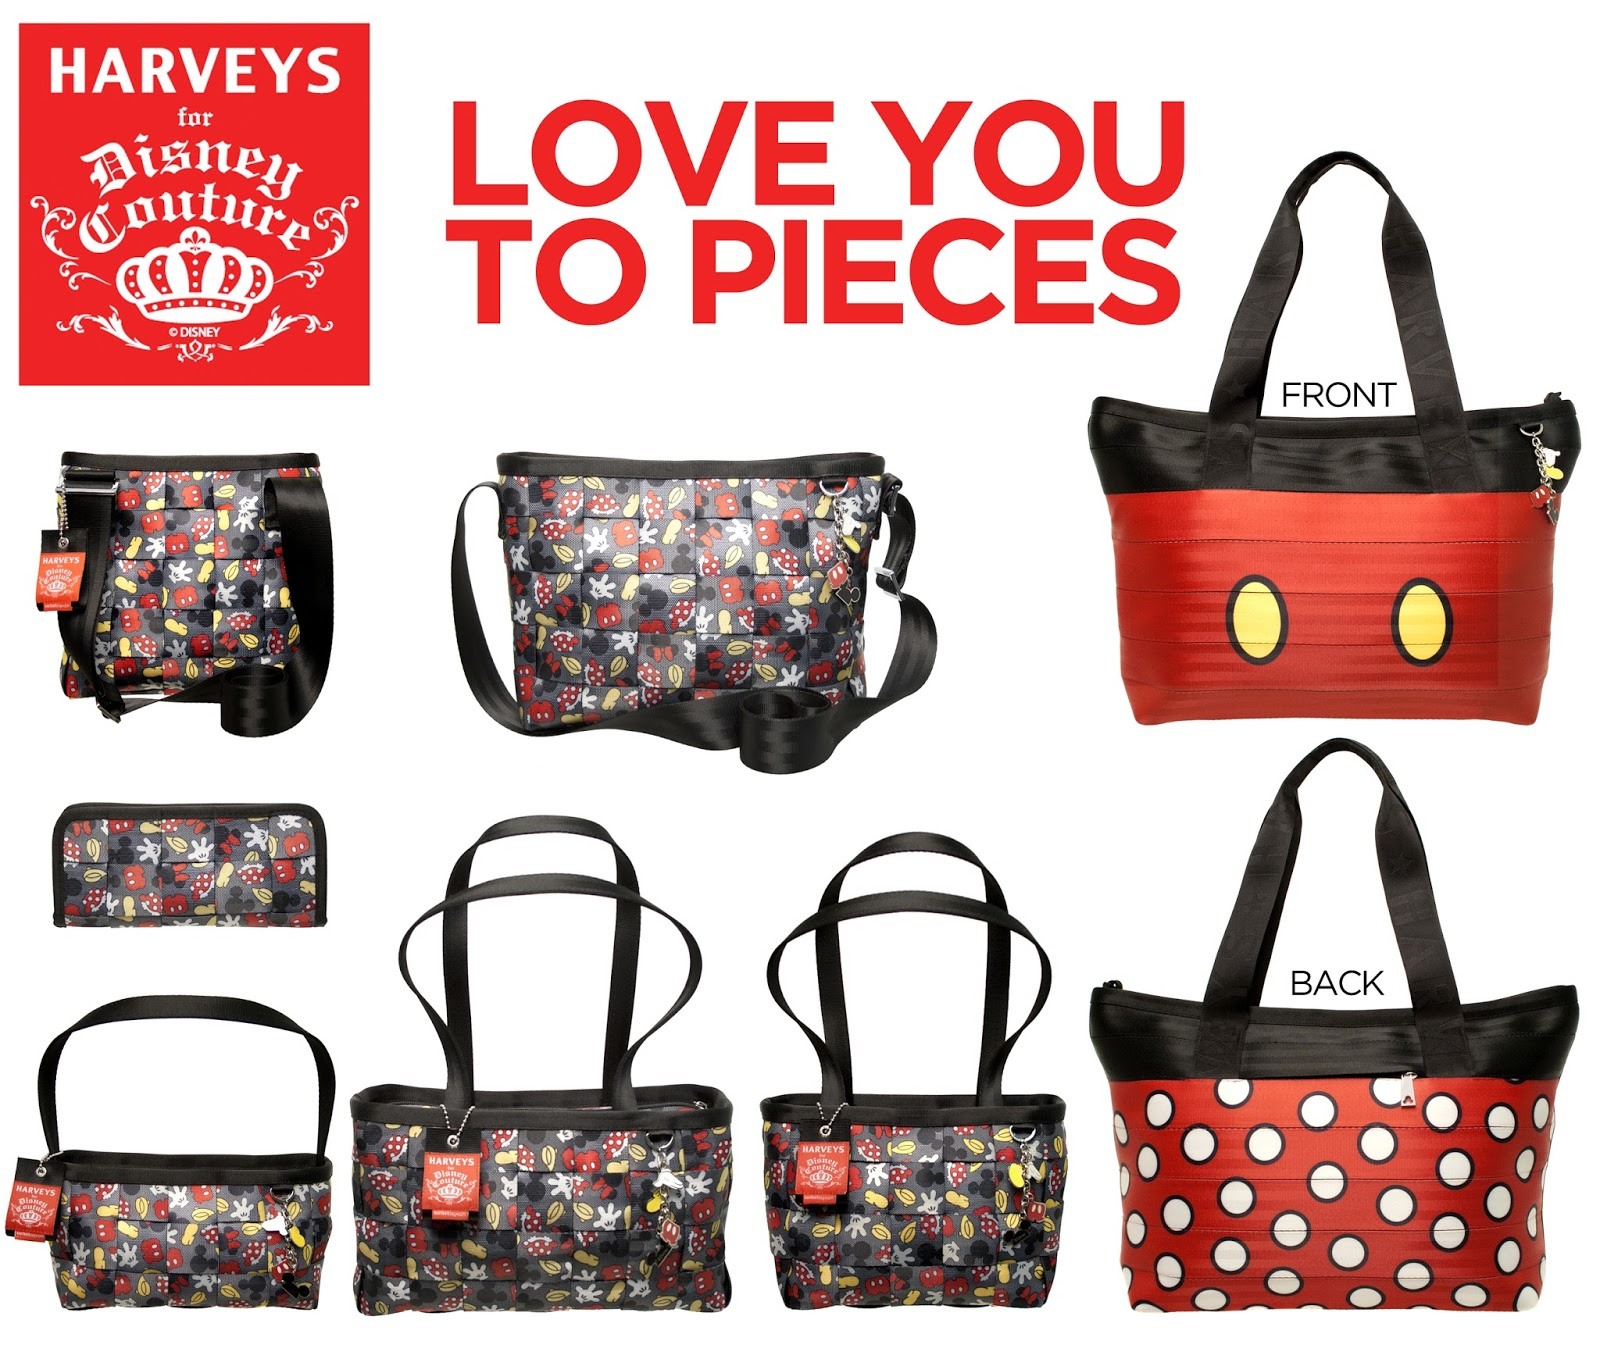 seatbeltblog: Love You to Pieces Launch!